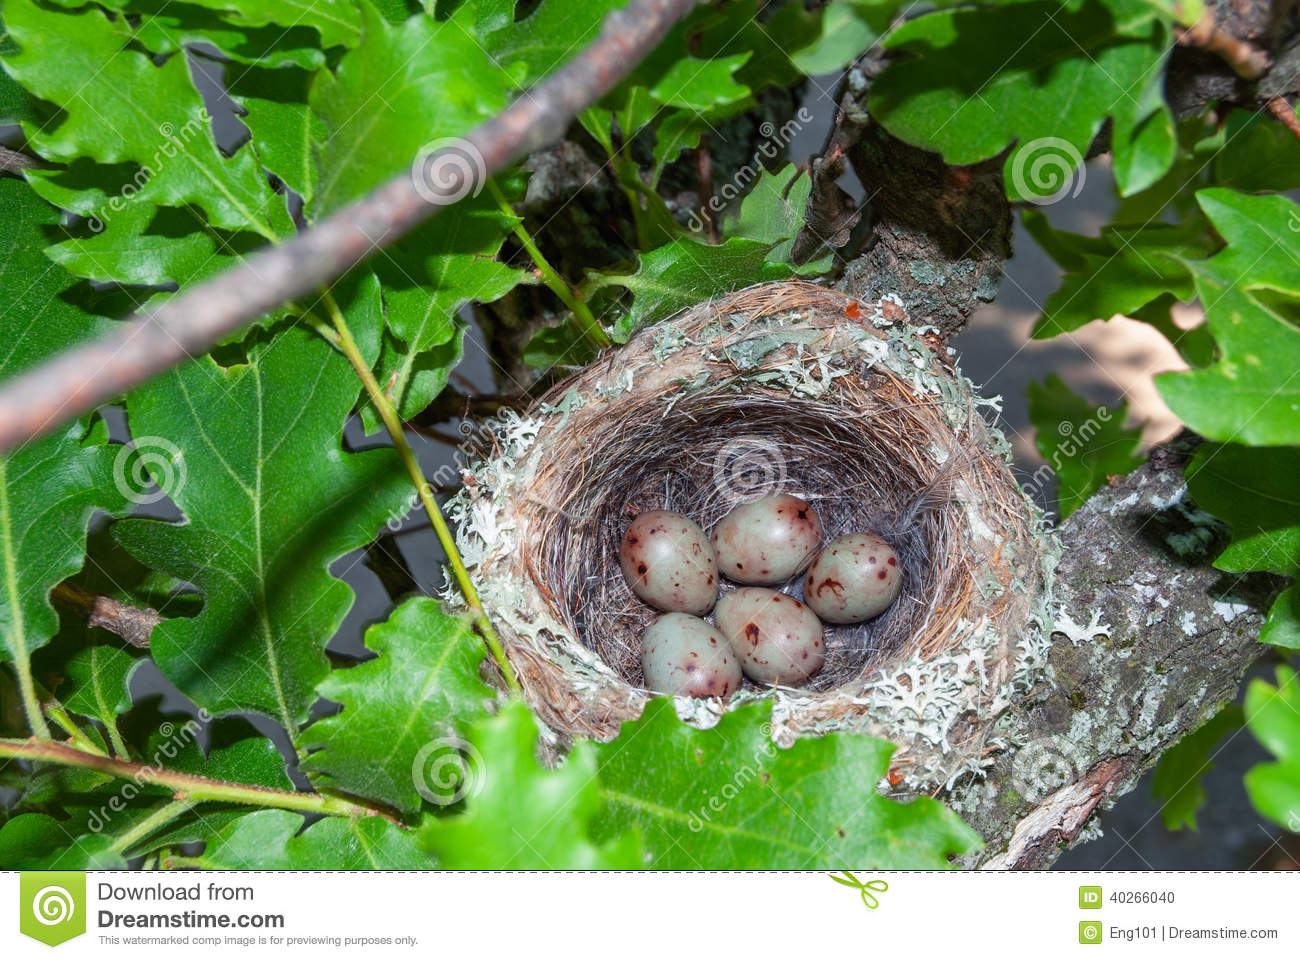 Engineering Design Process also Stock Photo Cockatiel Turning Eggs Nest Box Female Its Inside Its Image54219642 additionally Stock Photography Bird S Nest Hungry Chicks Spotted Flycatcher Muscicapa Striata Newly Hatched Begging Food Image37159022 additionally Stock Photo Nuthatch Feeding Nestlings Nest Eurasian Sitta Europaea Its Chicks Its Inside Tree Trunk Image50727284 further Stock Photography Mandatory Road Sign Stop Go Straight Photograph Image36988382. on eng101